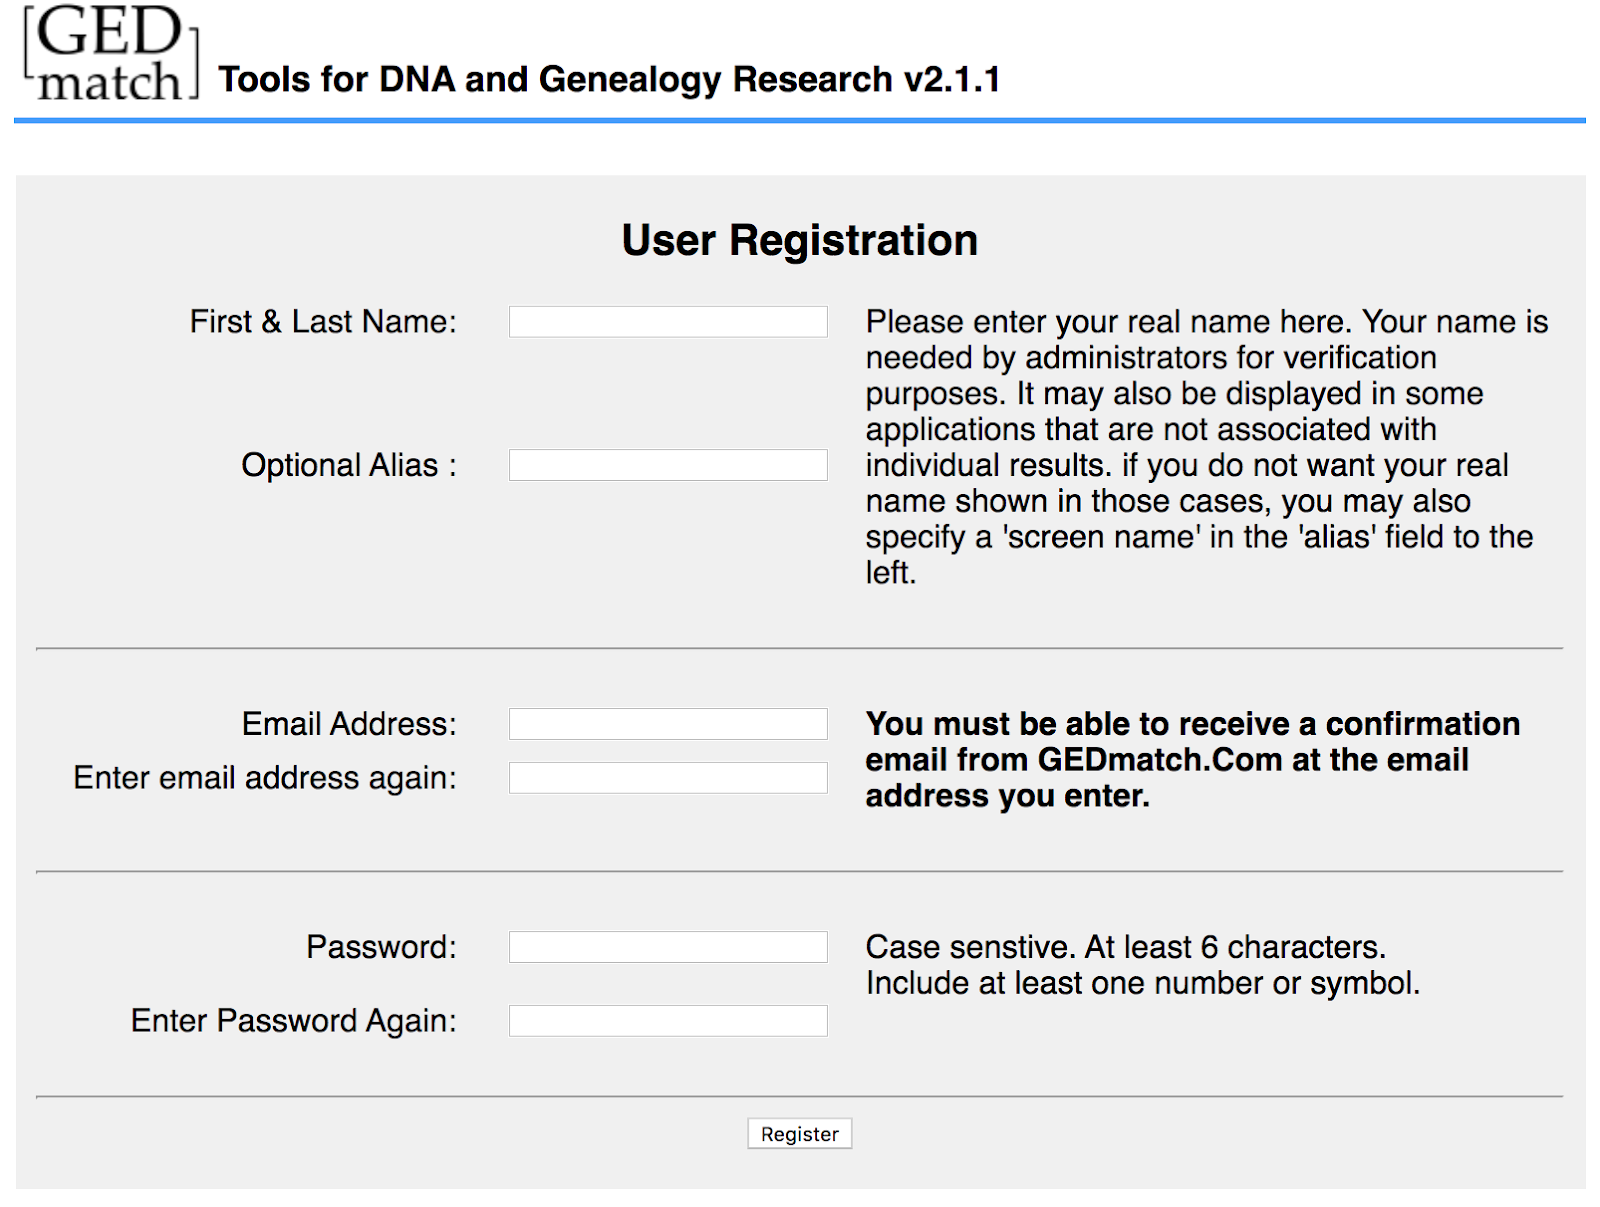 The GEDmatch user registration page requires an email that will be viewable by other users.